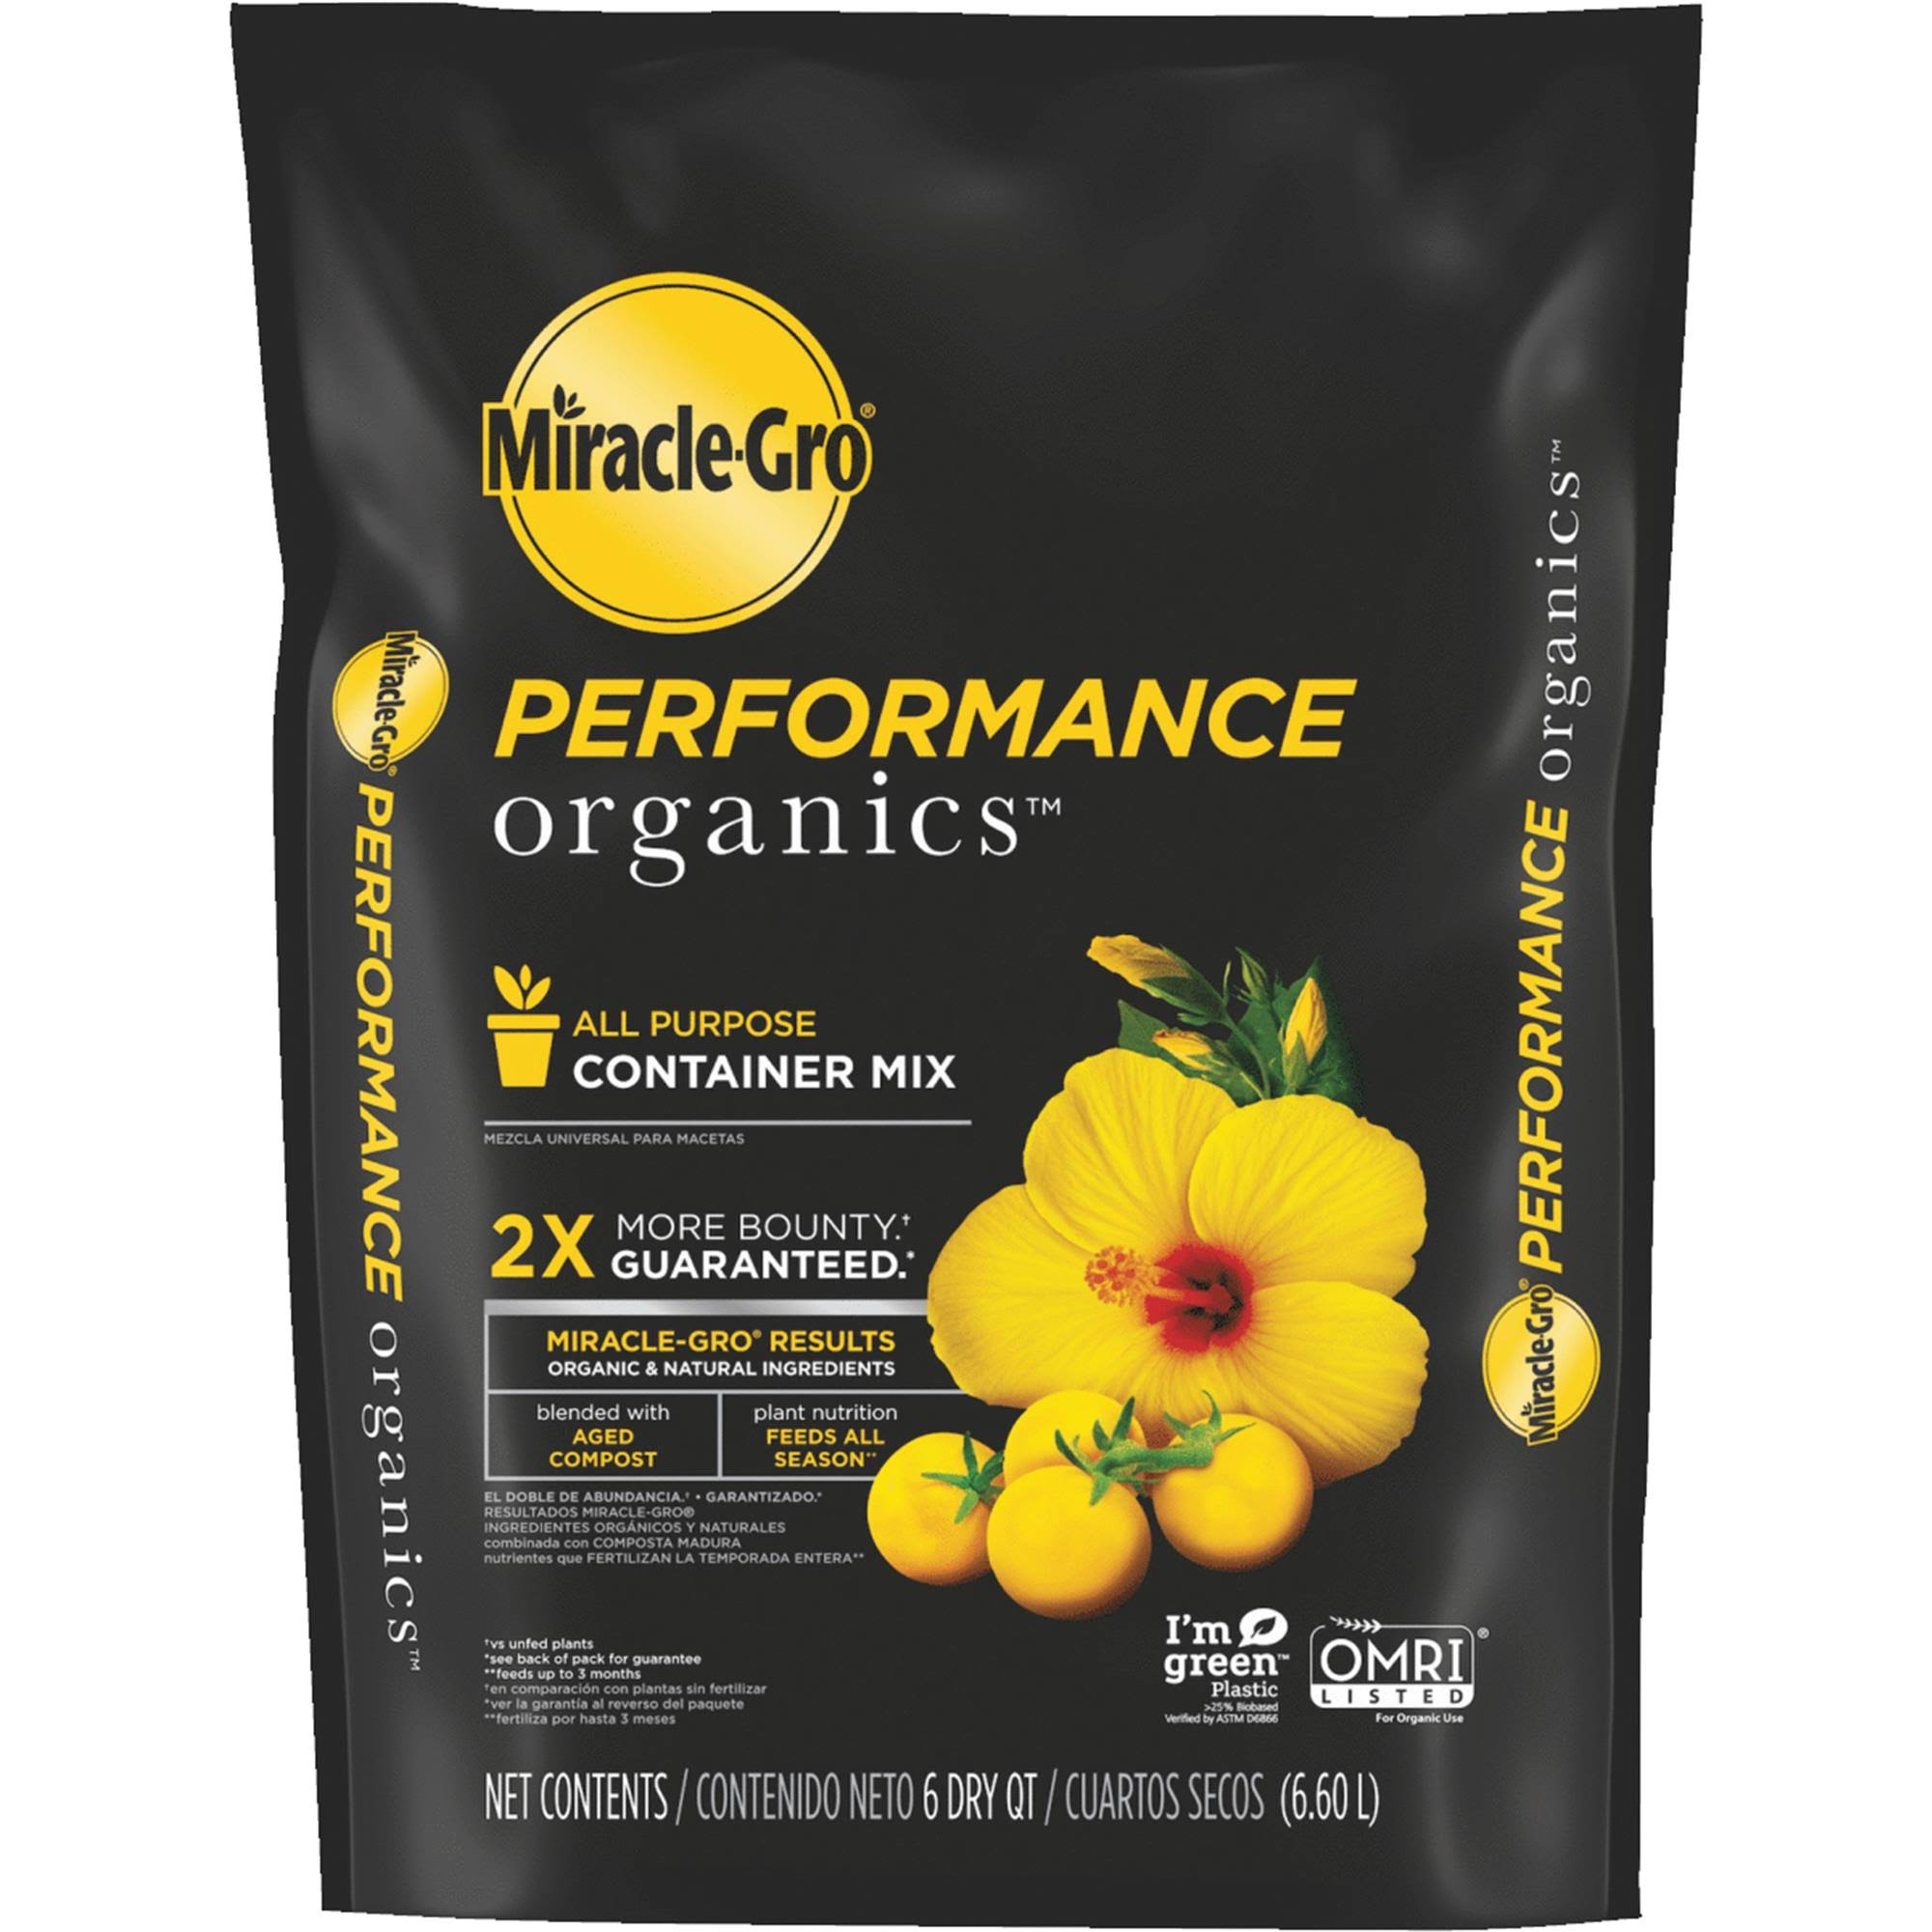 Miracle-Gro Performance Organics 6 qt Container Mix